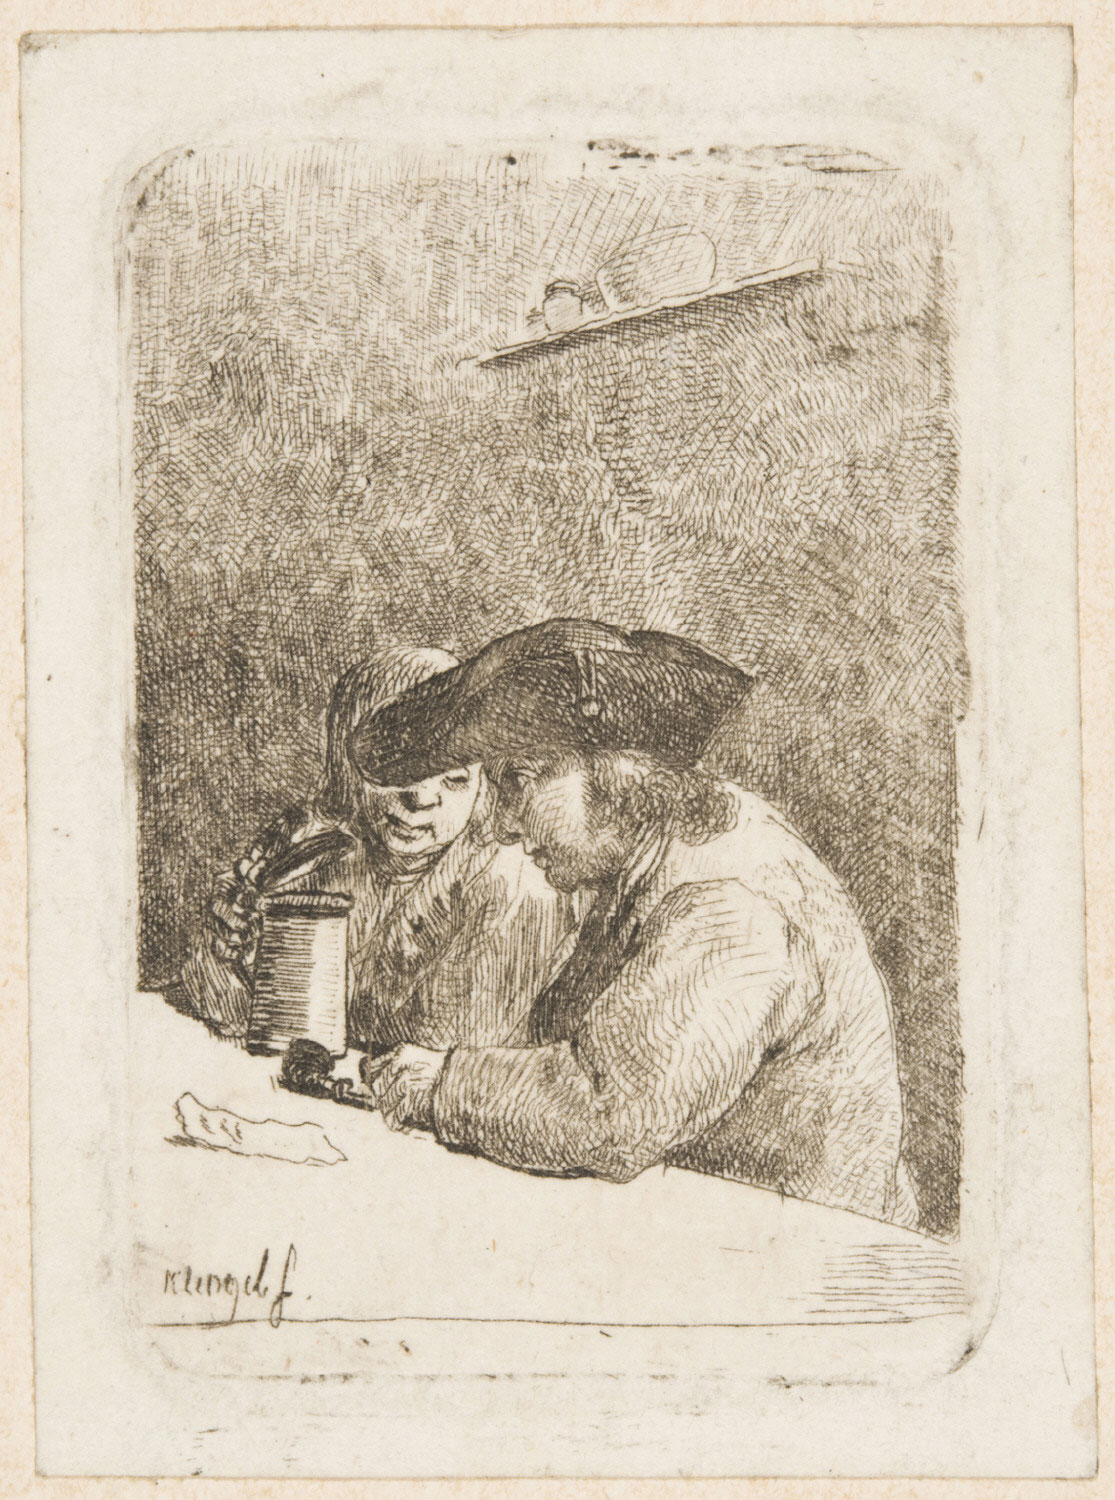 Two Young Men Seated at a Table, One with a Beer Stein